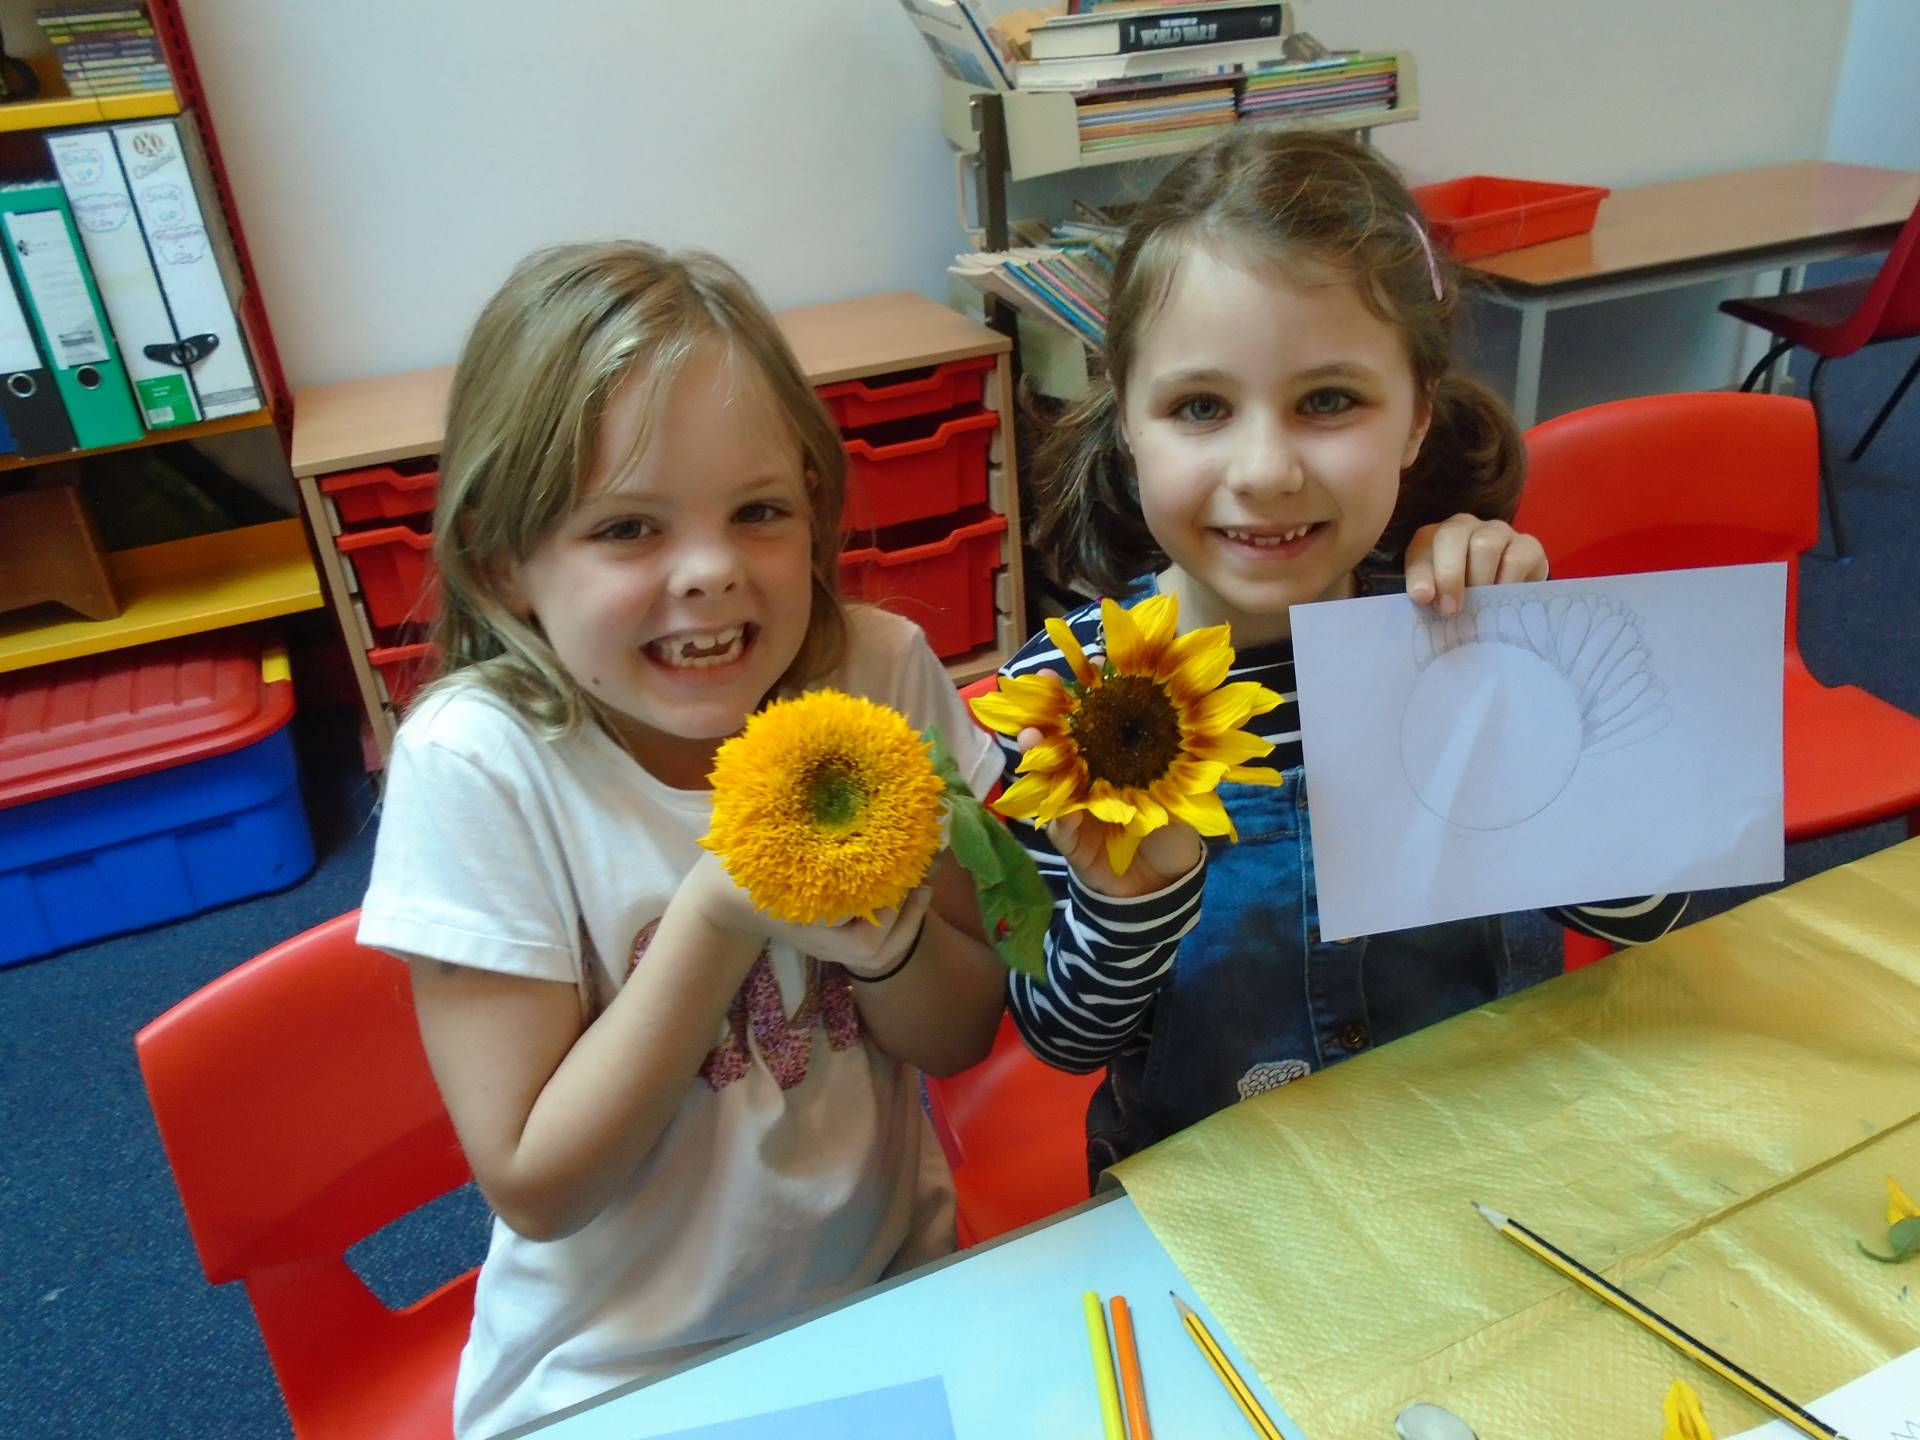 Two children holding sunflowers